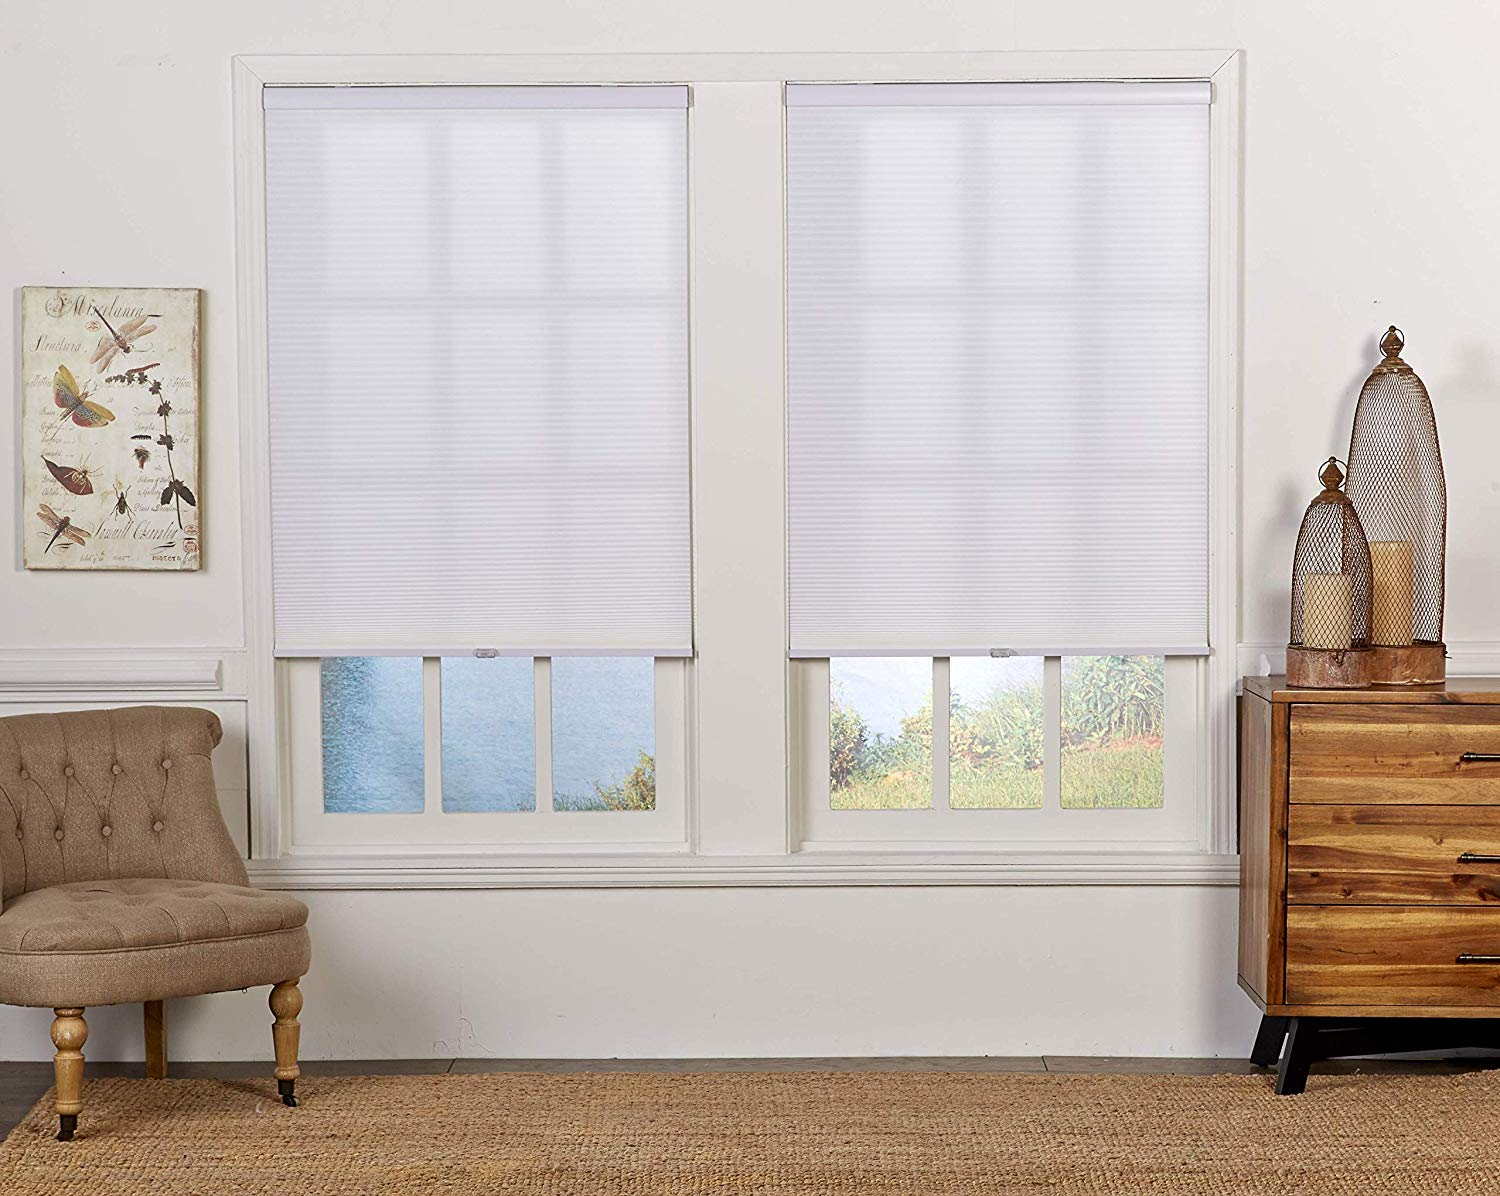 20.5W x 72H Inches DEZ Furnishings QHWT204720 Light Filtering 1.5 Double Cellular Window Shade White